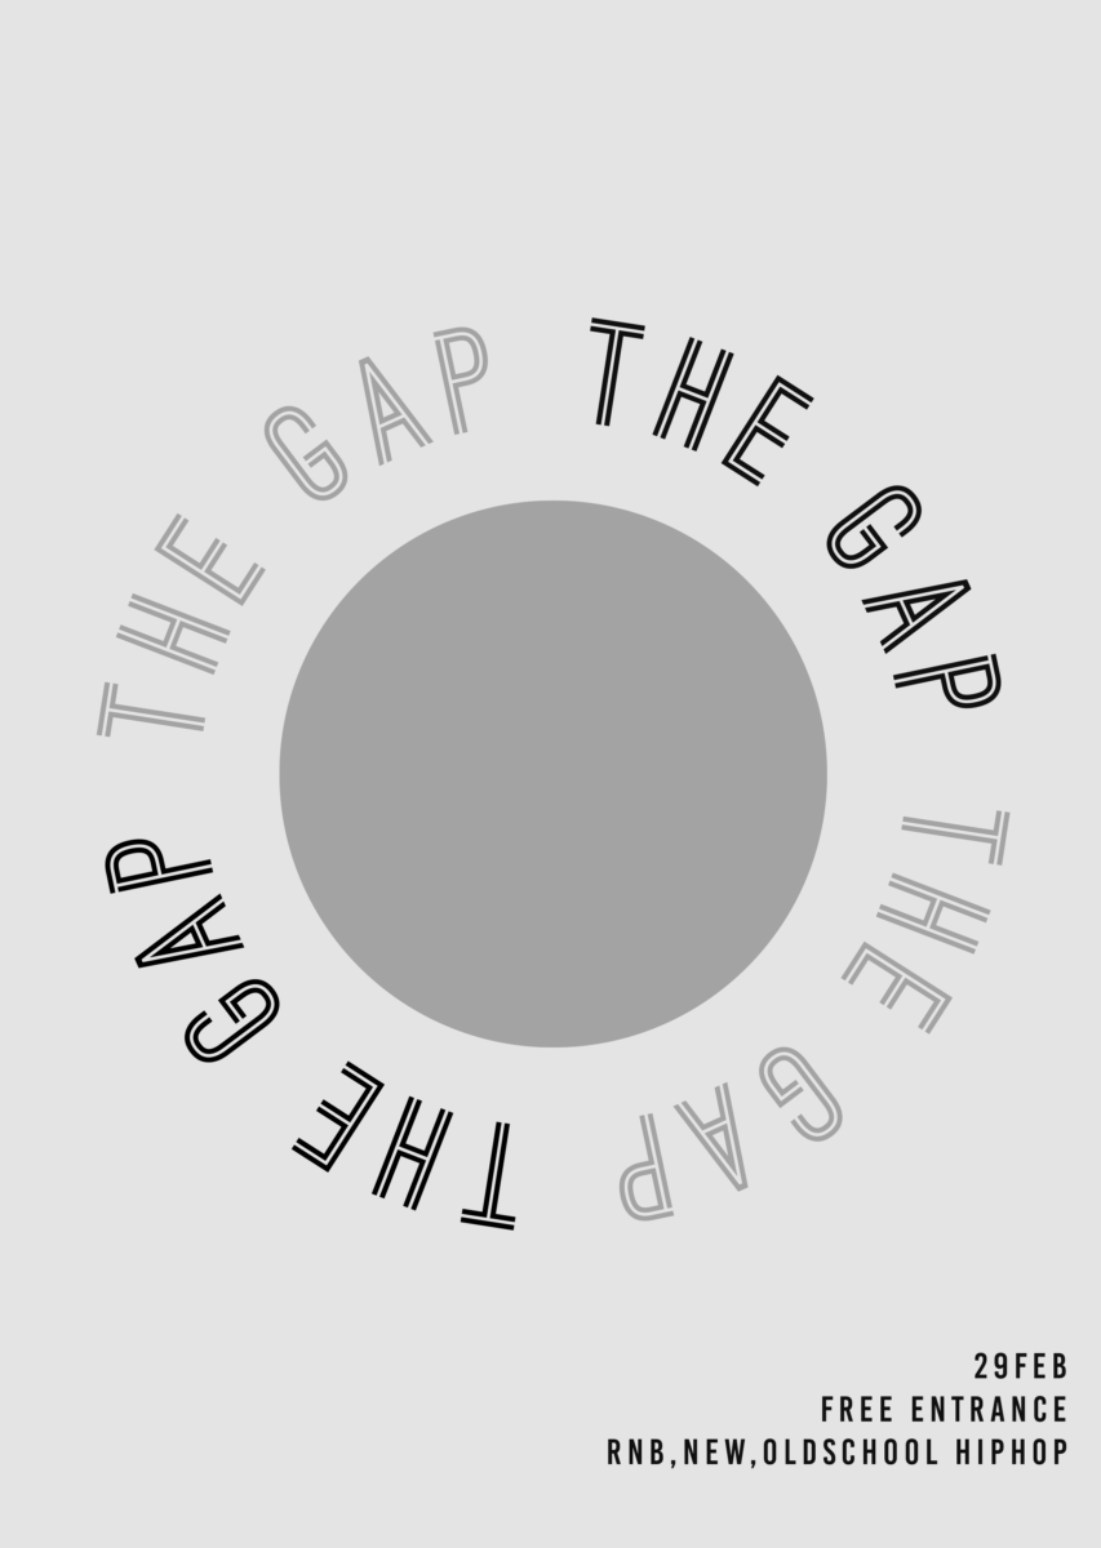 The Gap | Club Smederij